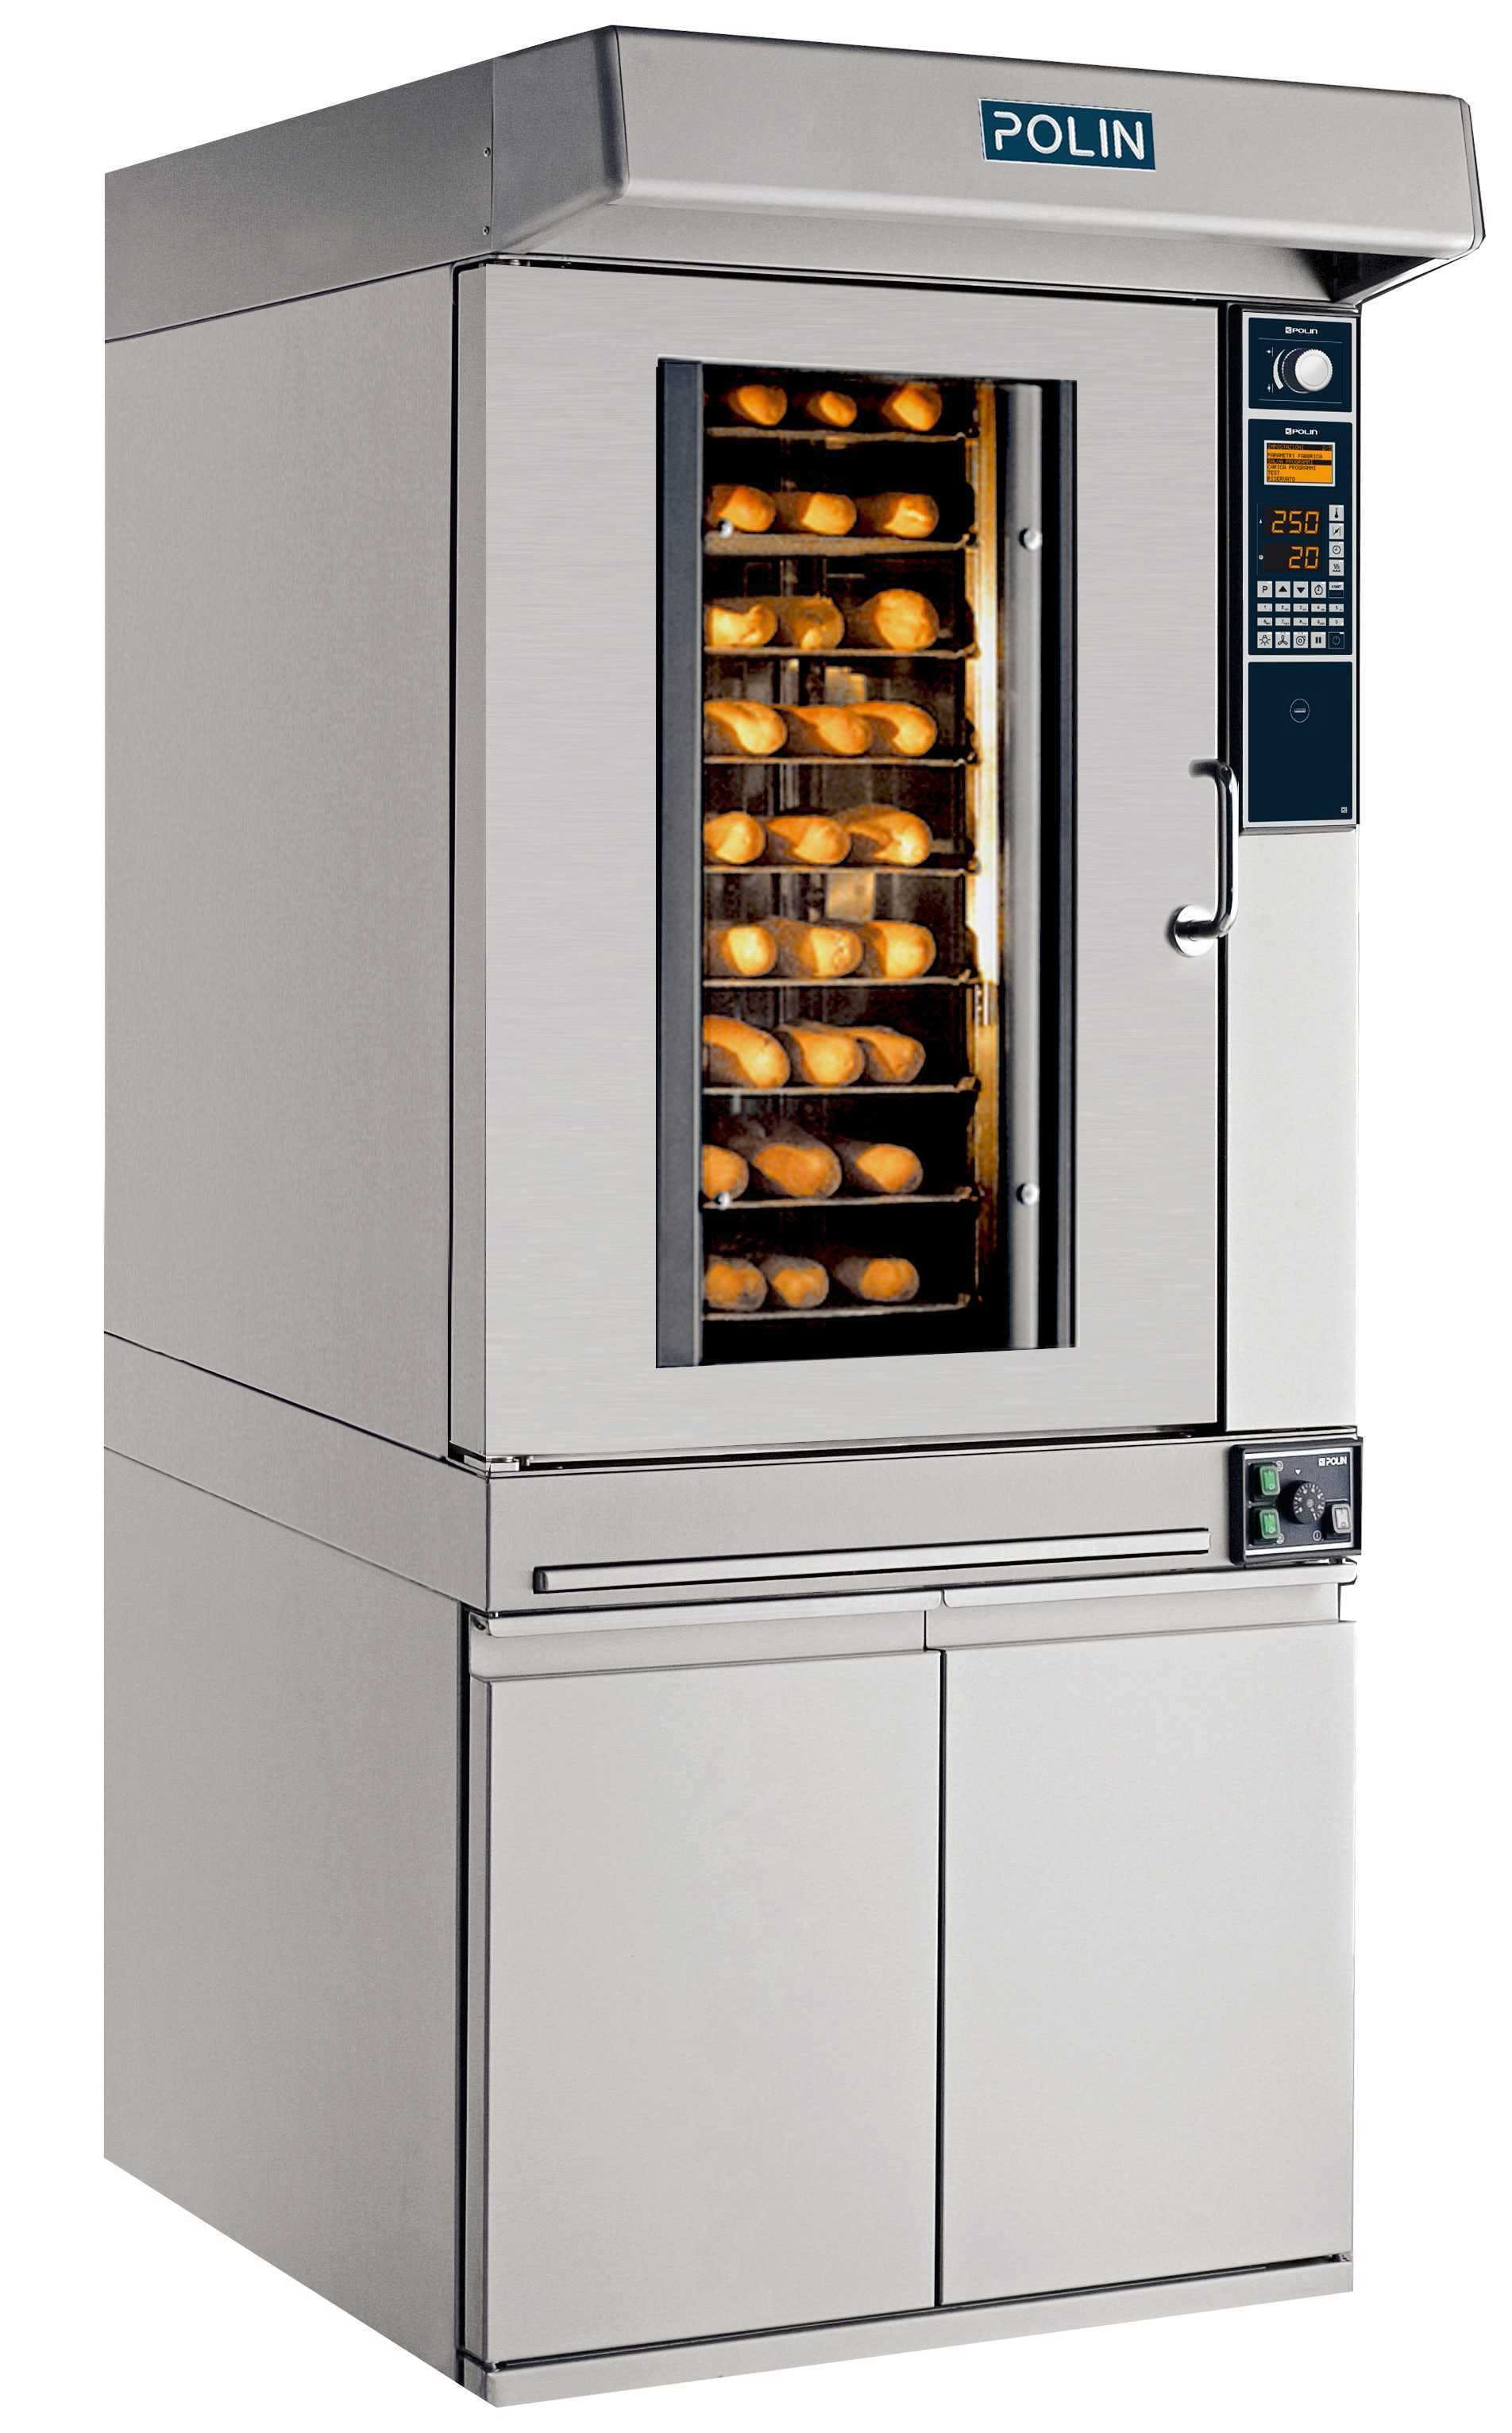 Wind 10 Pan Convection Oven - Wind - sold by pro BAKE Inc.